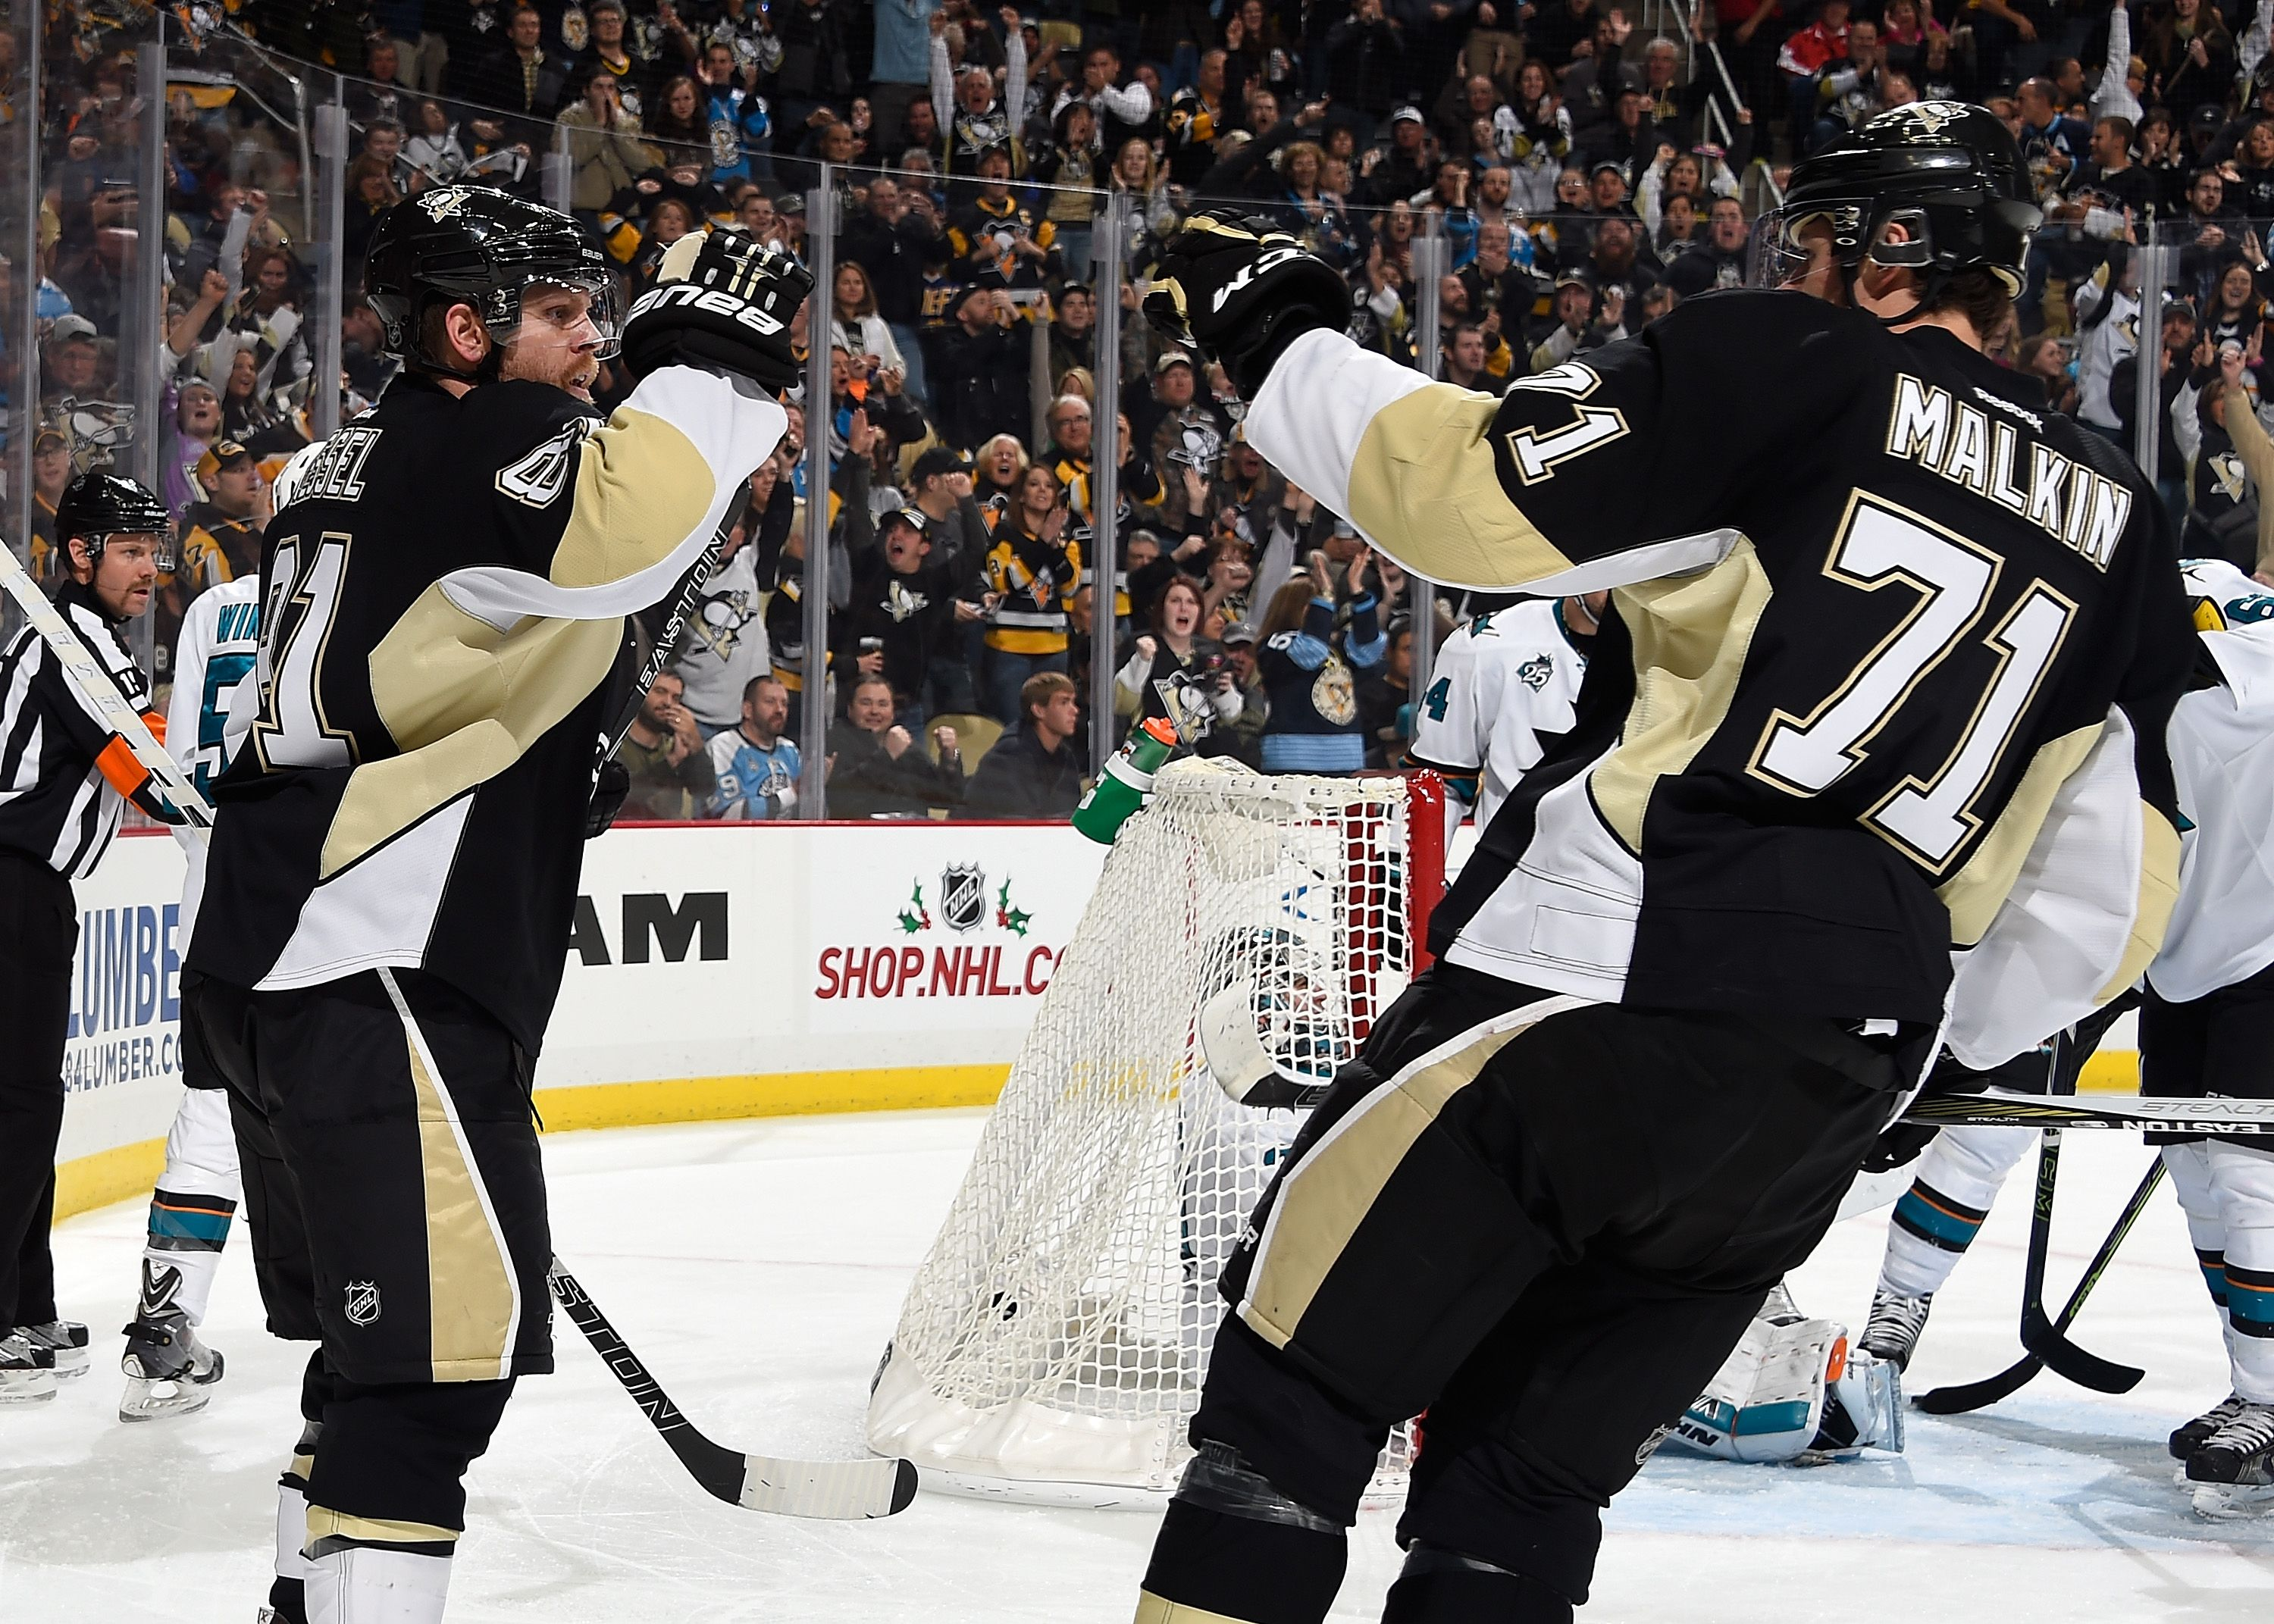 November 21, 2015 vs. San Jose: Phil Kessel picked up his seventh goal of the season, which proved to be the Penguins only goal of the game. Final score, 3-1 Sharks.